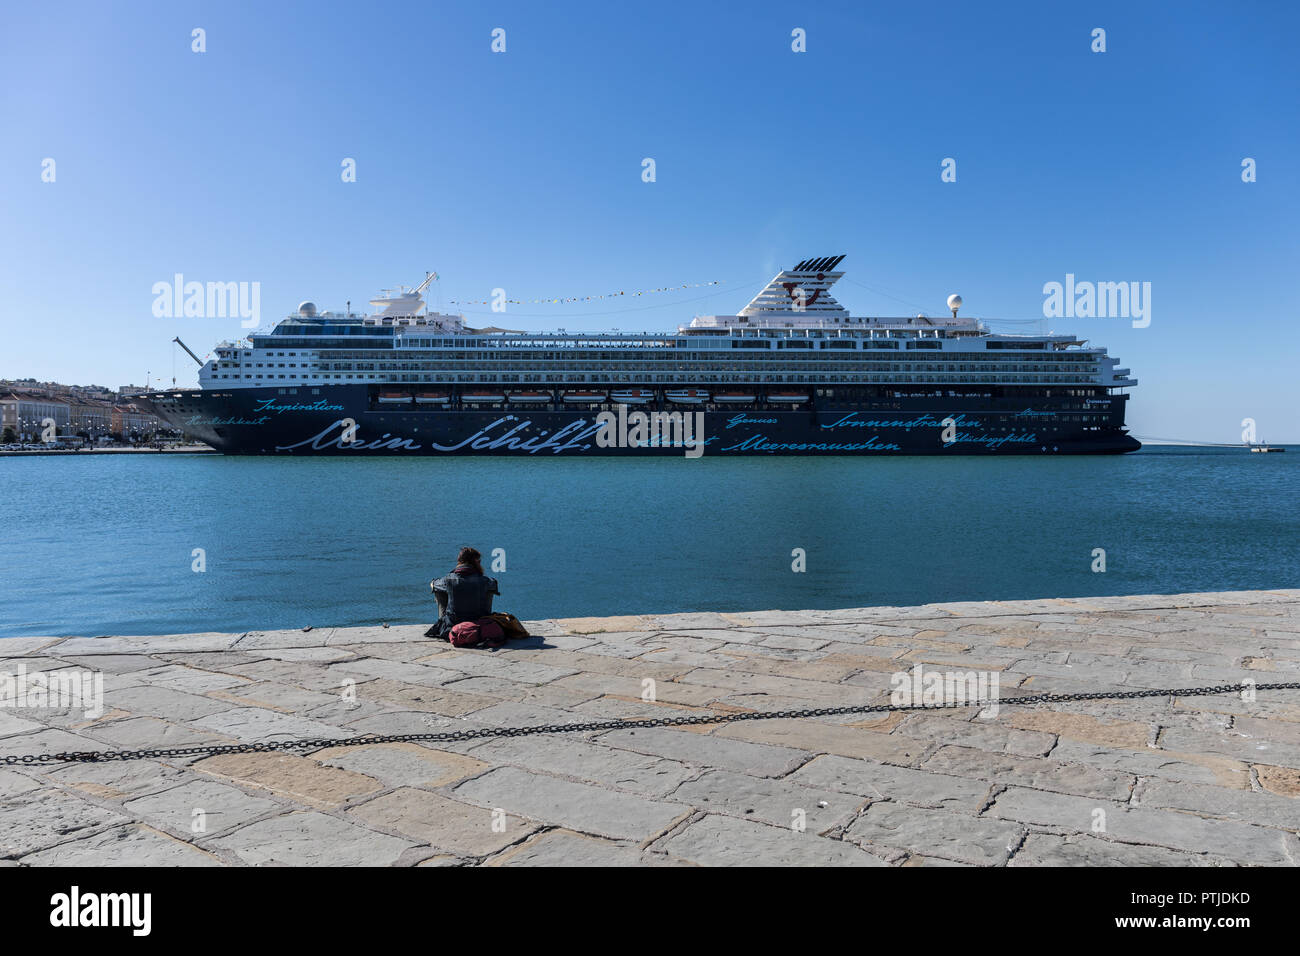 Woman sitting on the Audace pier (Molo Audace) watching a luxury cruise ship Mein Schiff 2 docked in the port of Trieste, Friuli Venezia Giulia, Italy - Stock Image